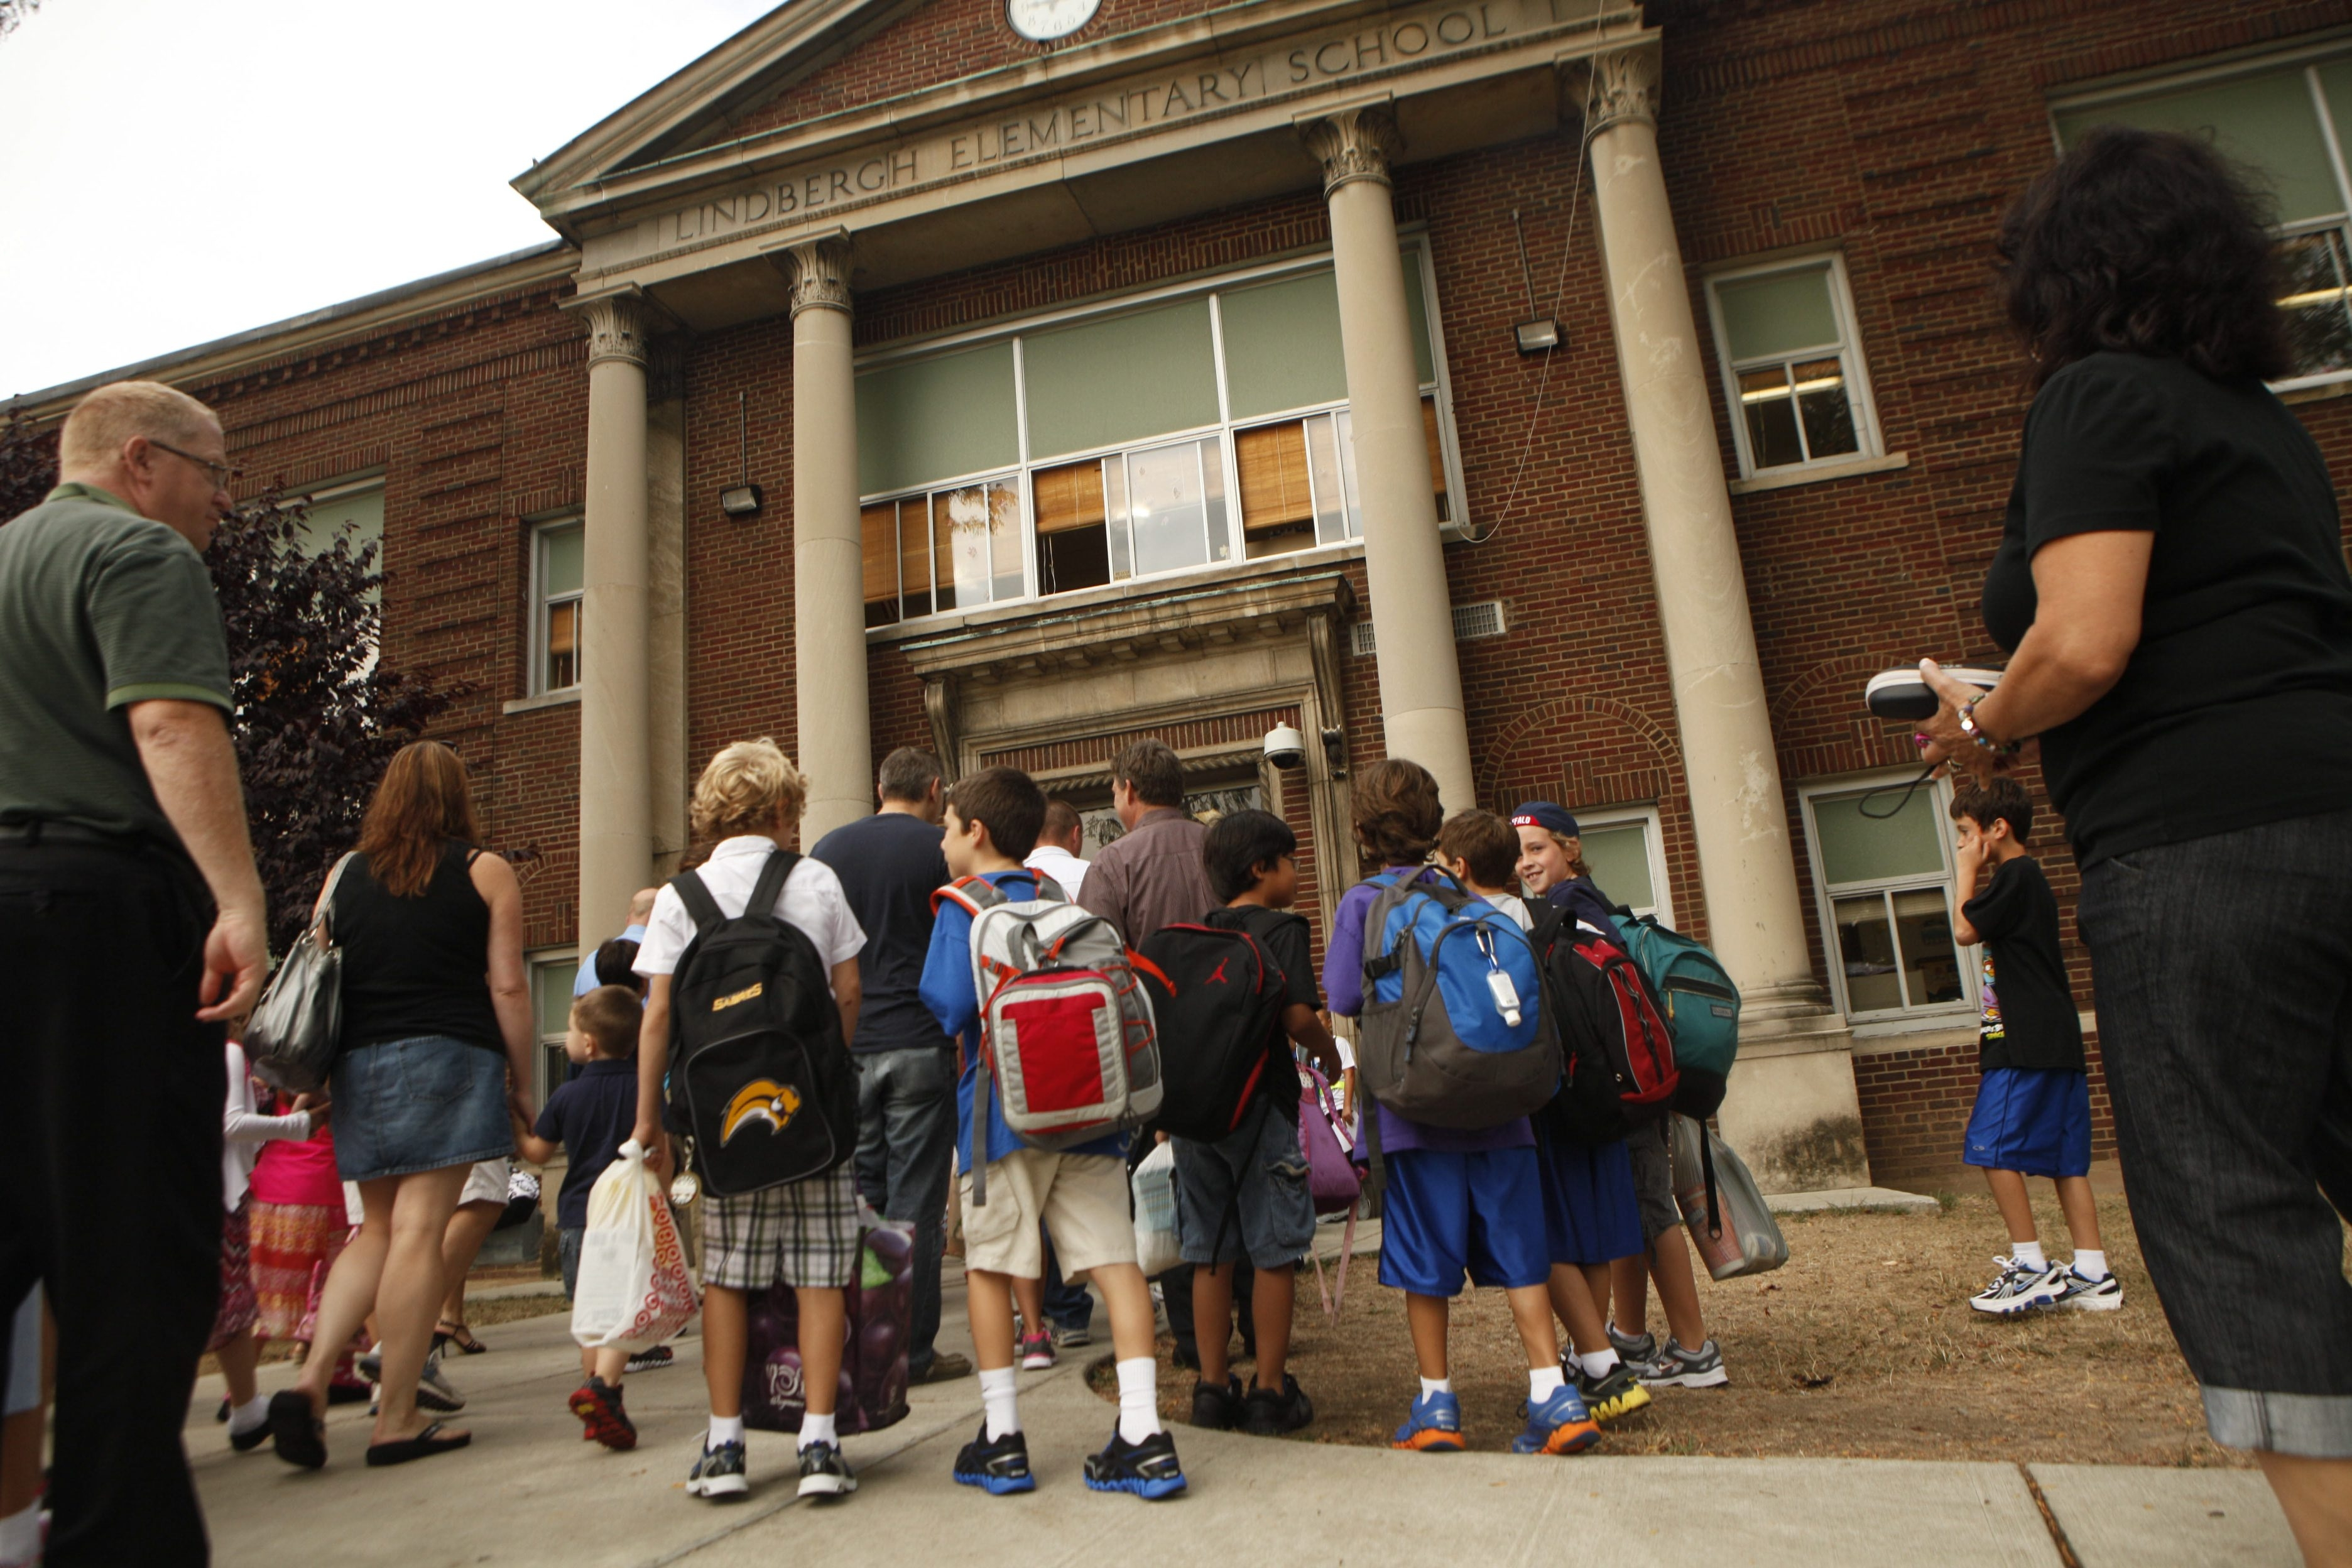 The first day of school is almost here. Our guide should help parents and students get ready for the big day.